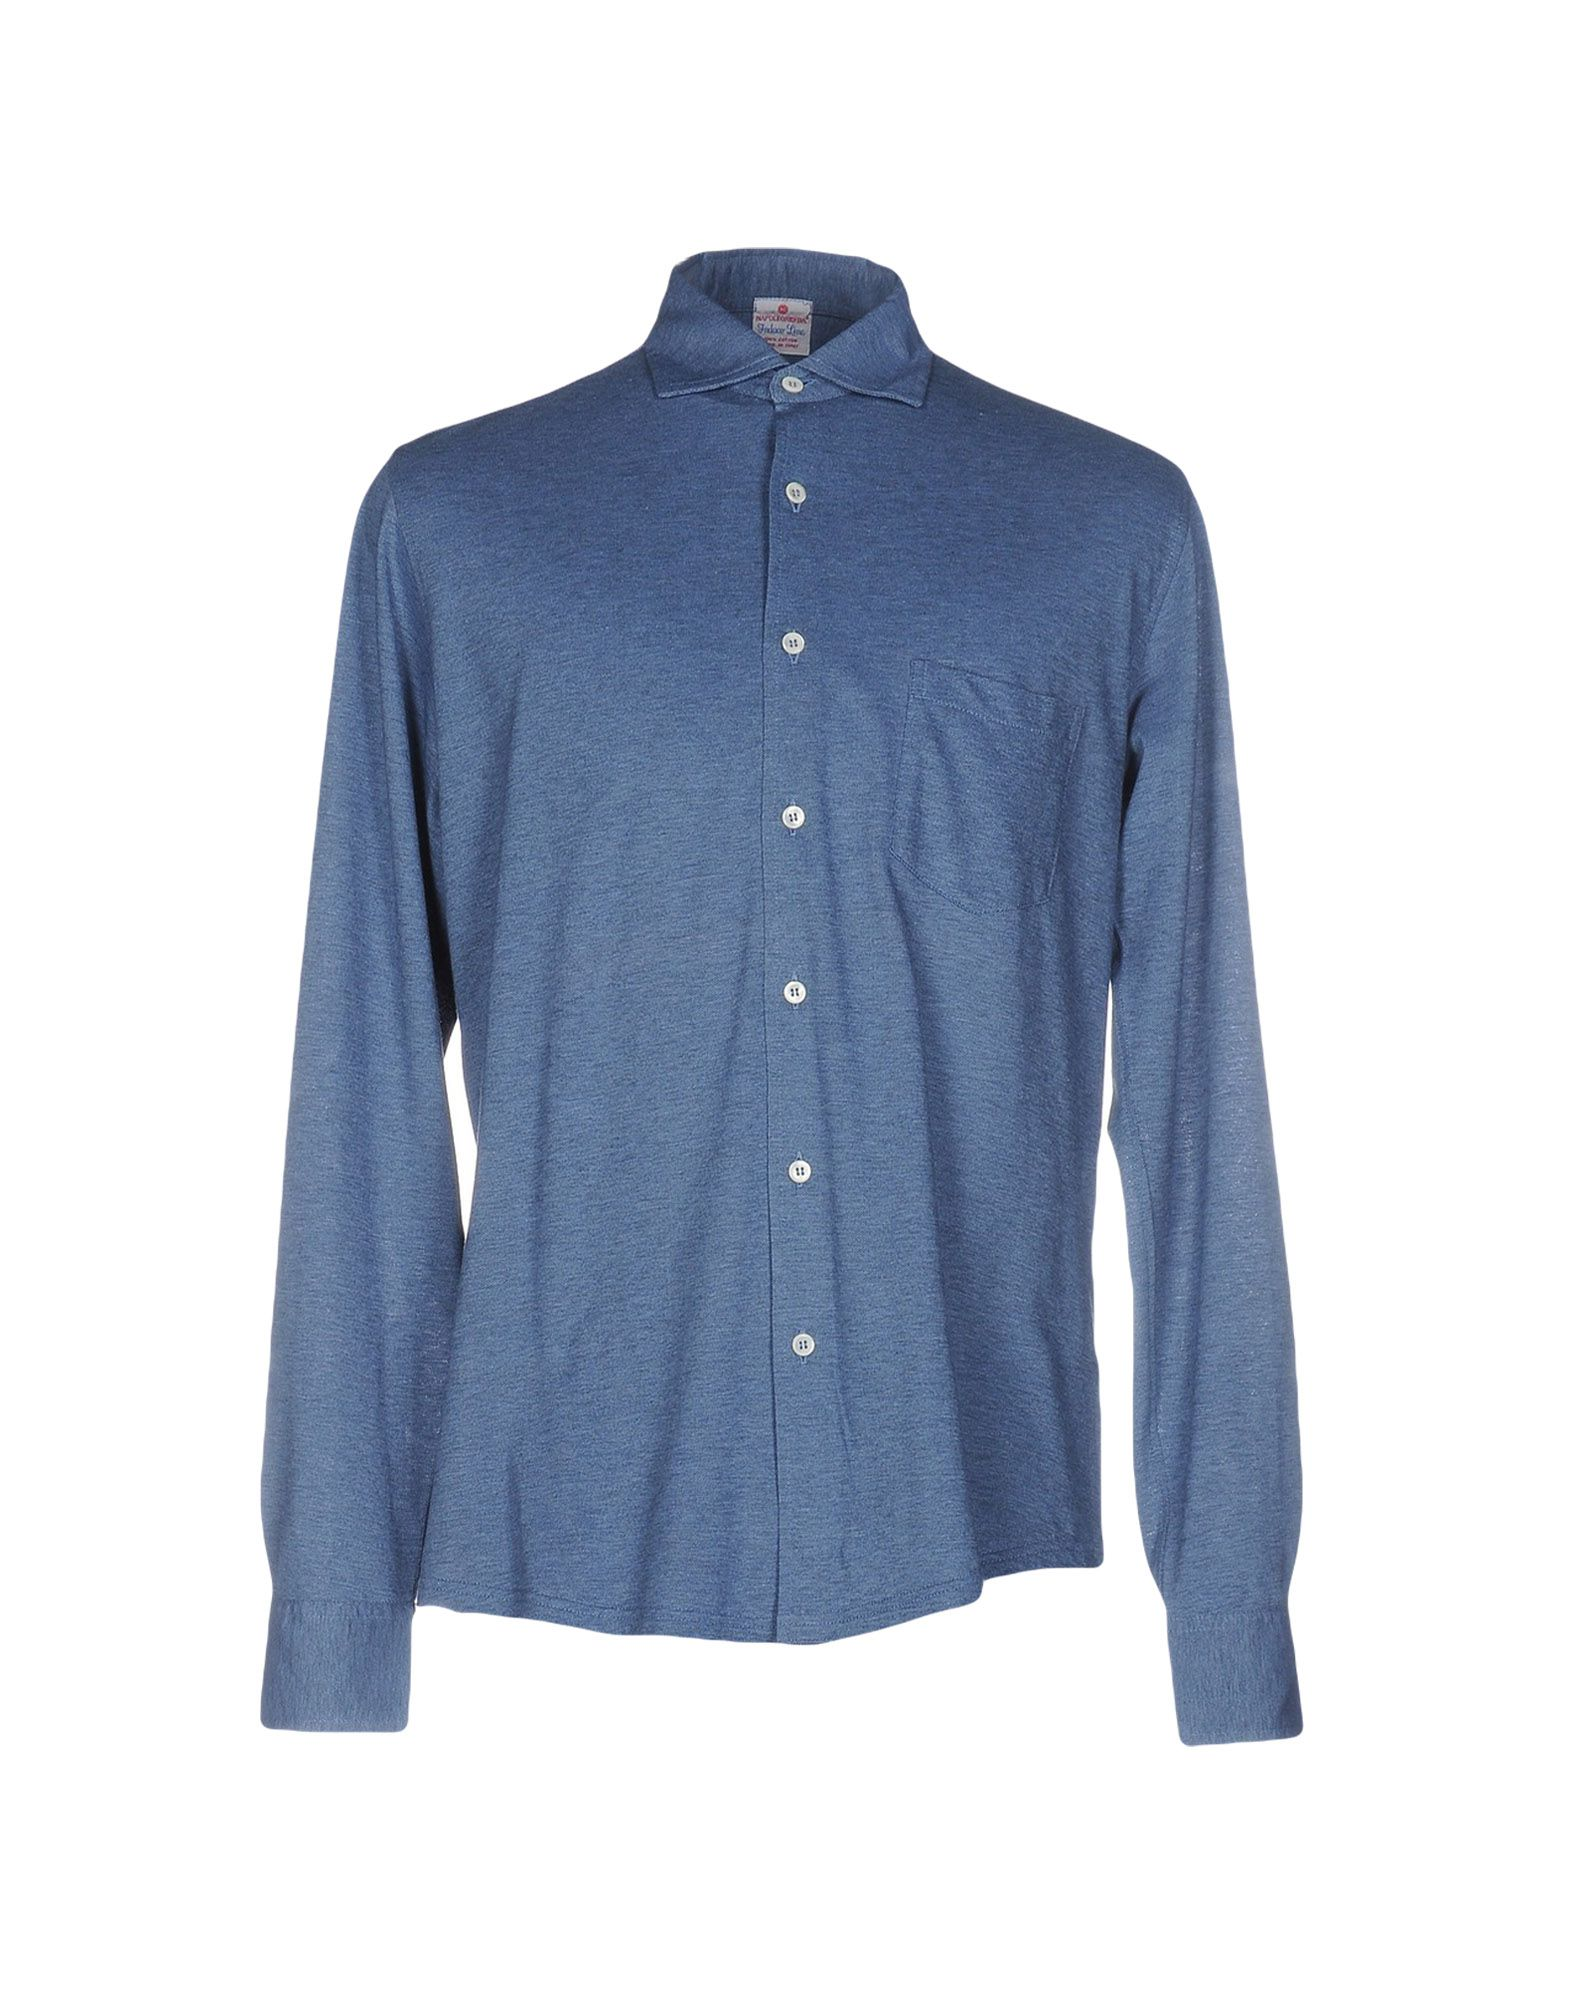 NAPOLEONERBA Patterned Shirt in Blue